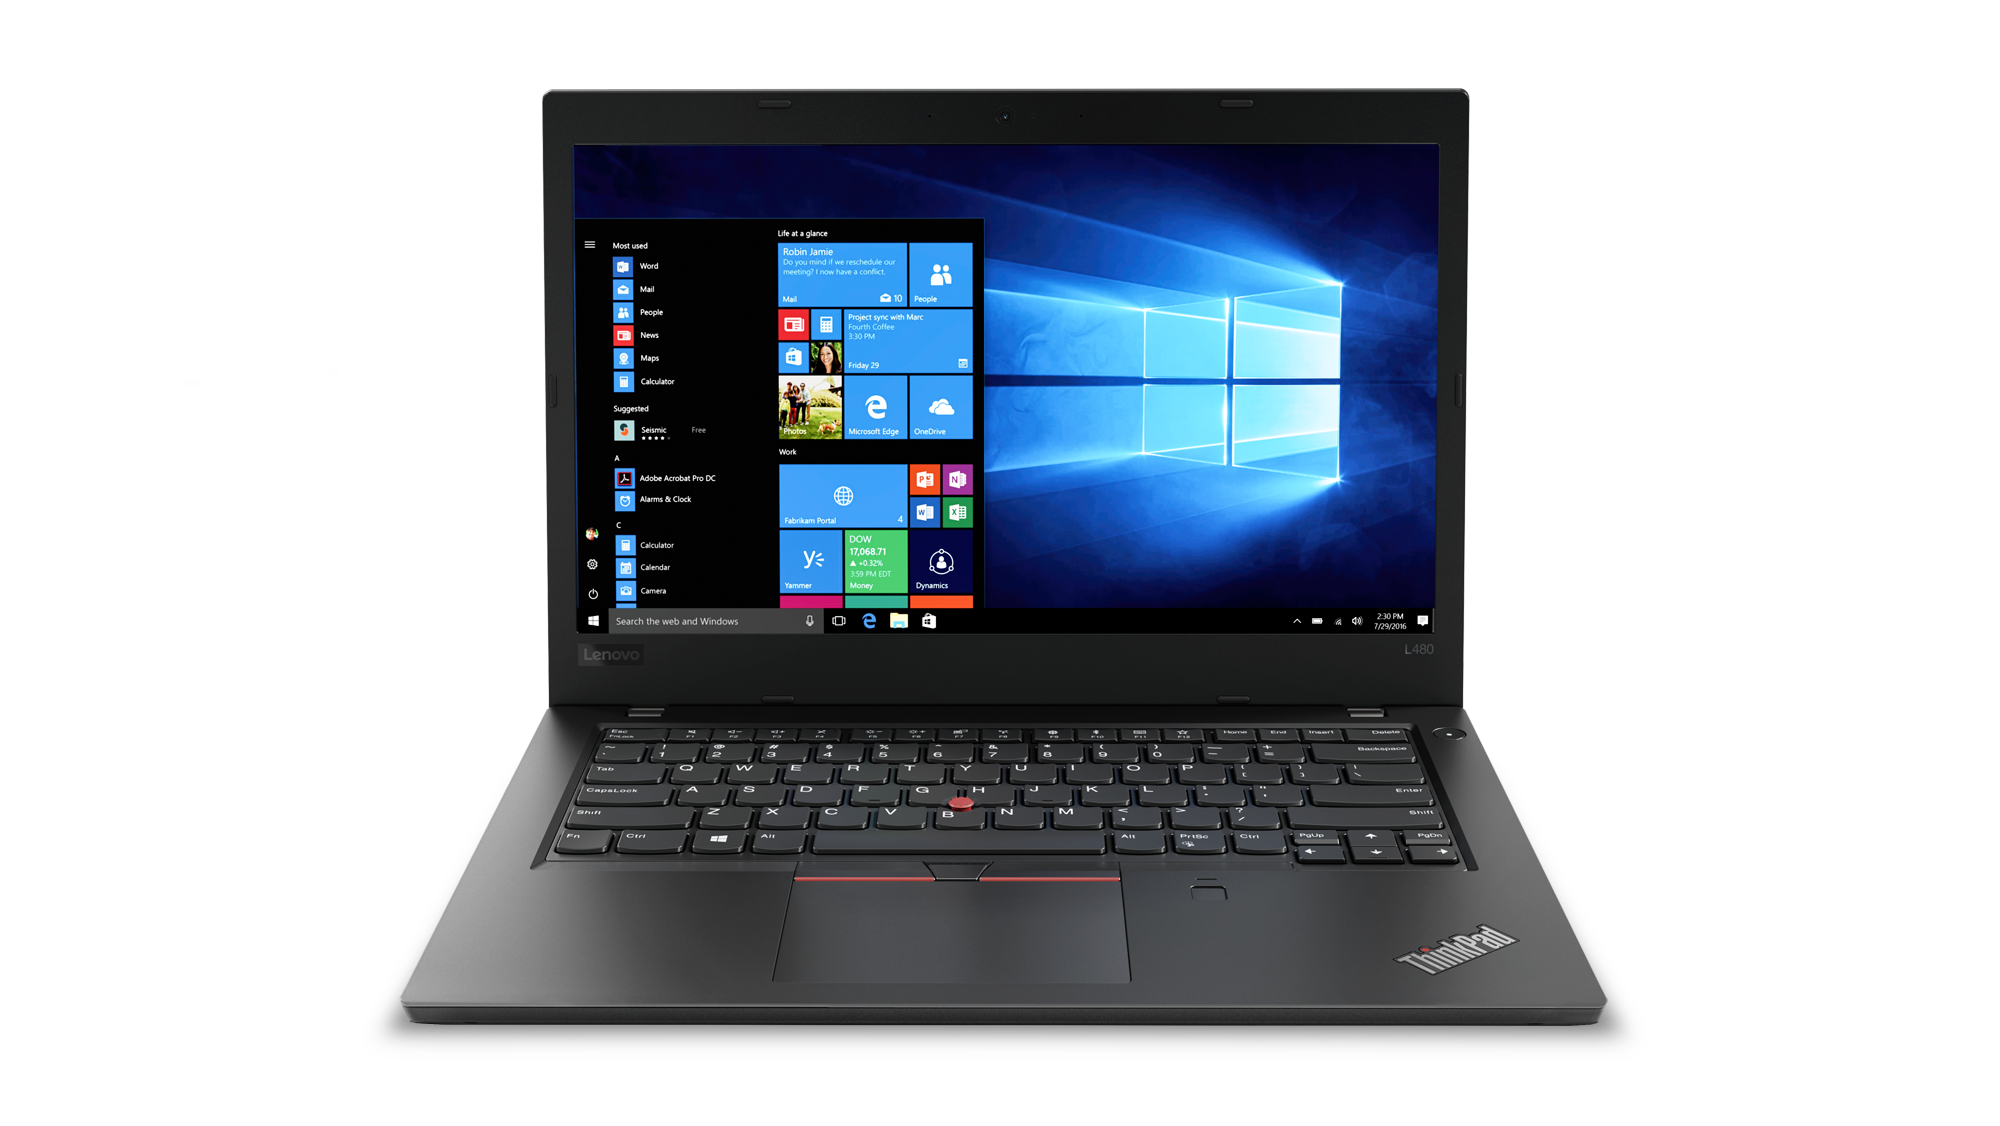 20LS001AMC Lenovo Thinkpad L480 14F/i5-8250U/8GB/256SSD/Intel UHD/10P